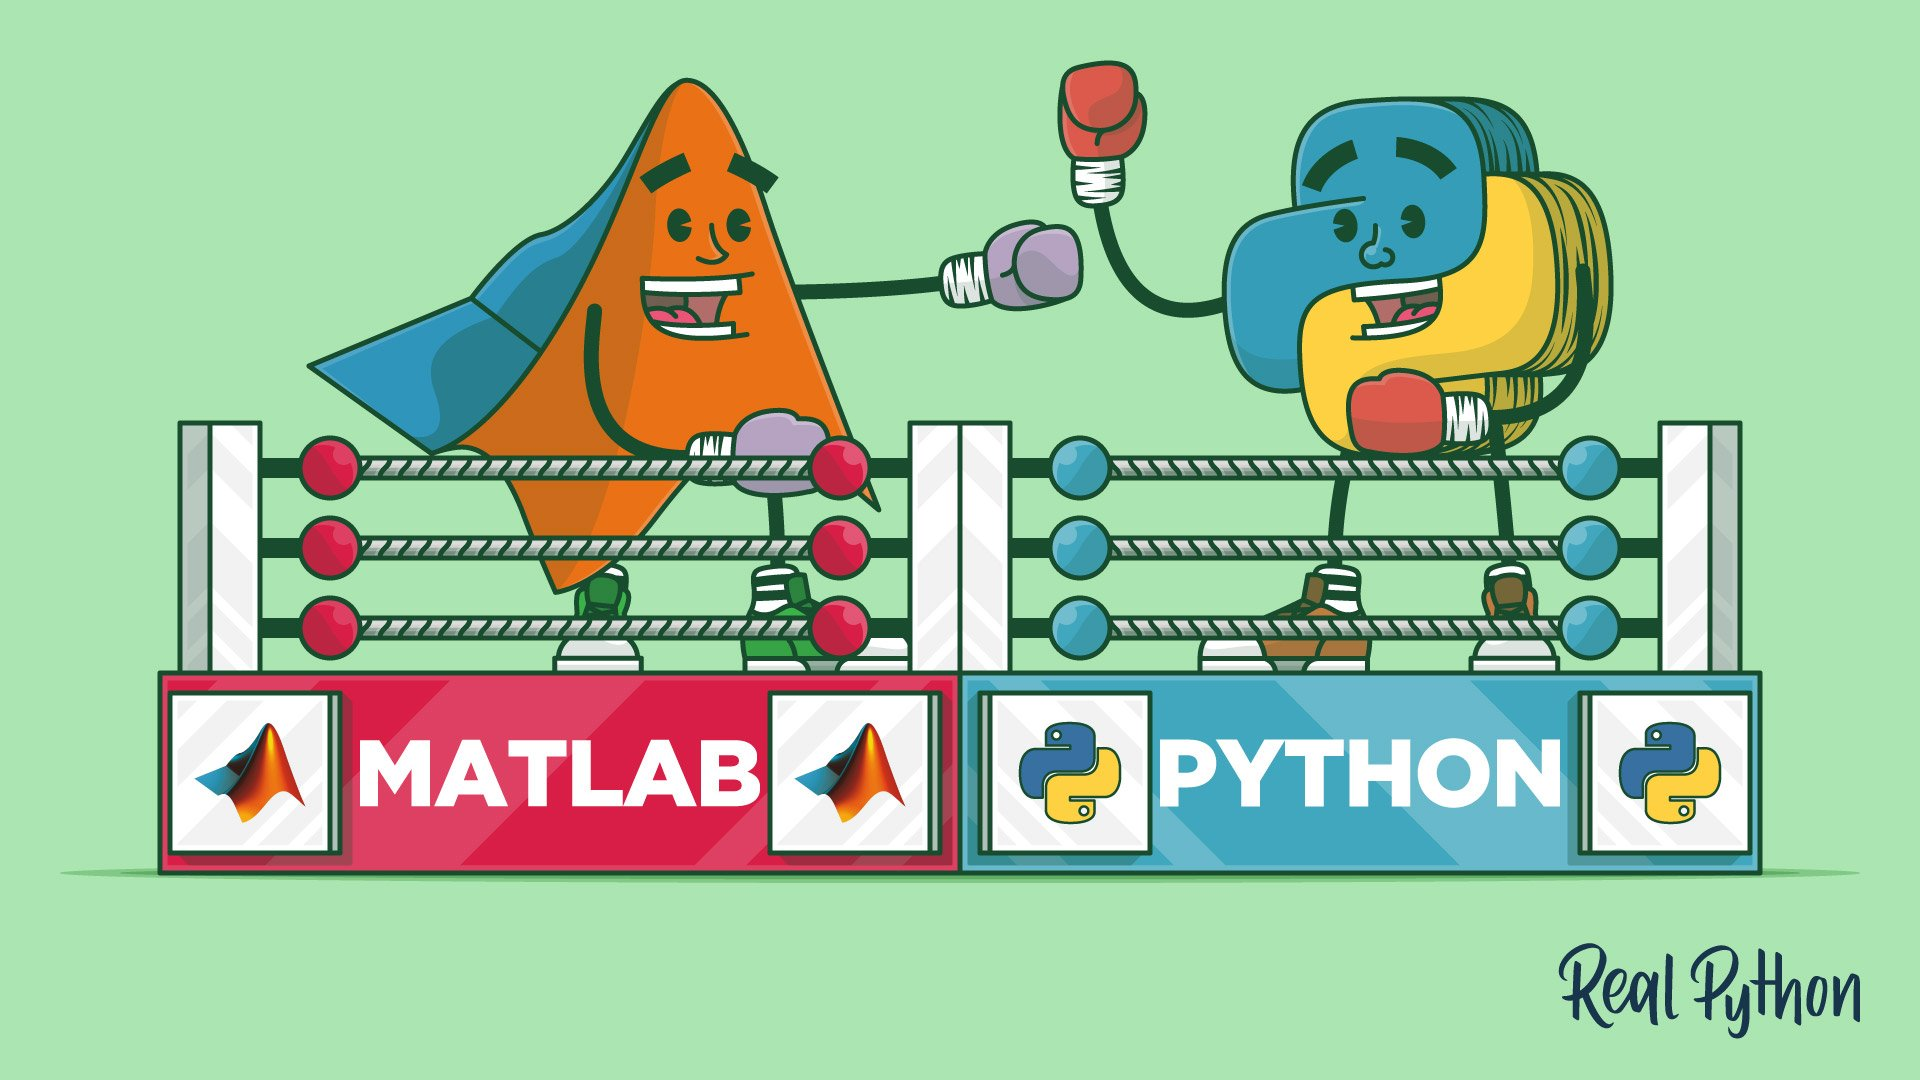 MATLAB vs Python: Why and How to Make the Switch